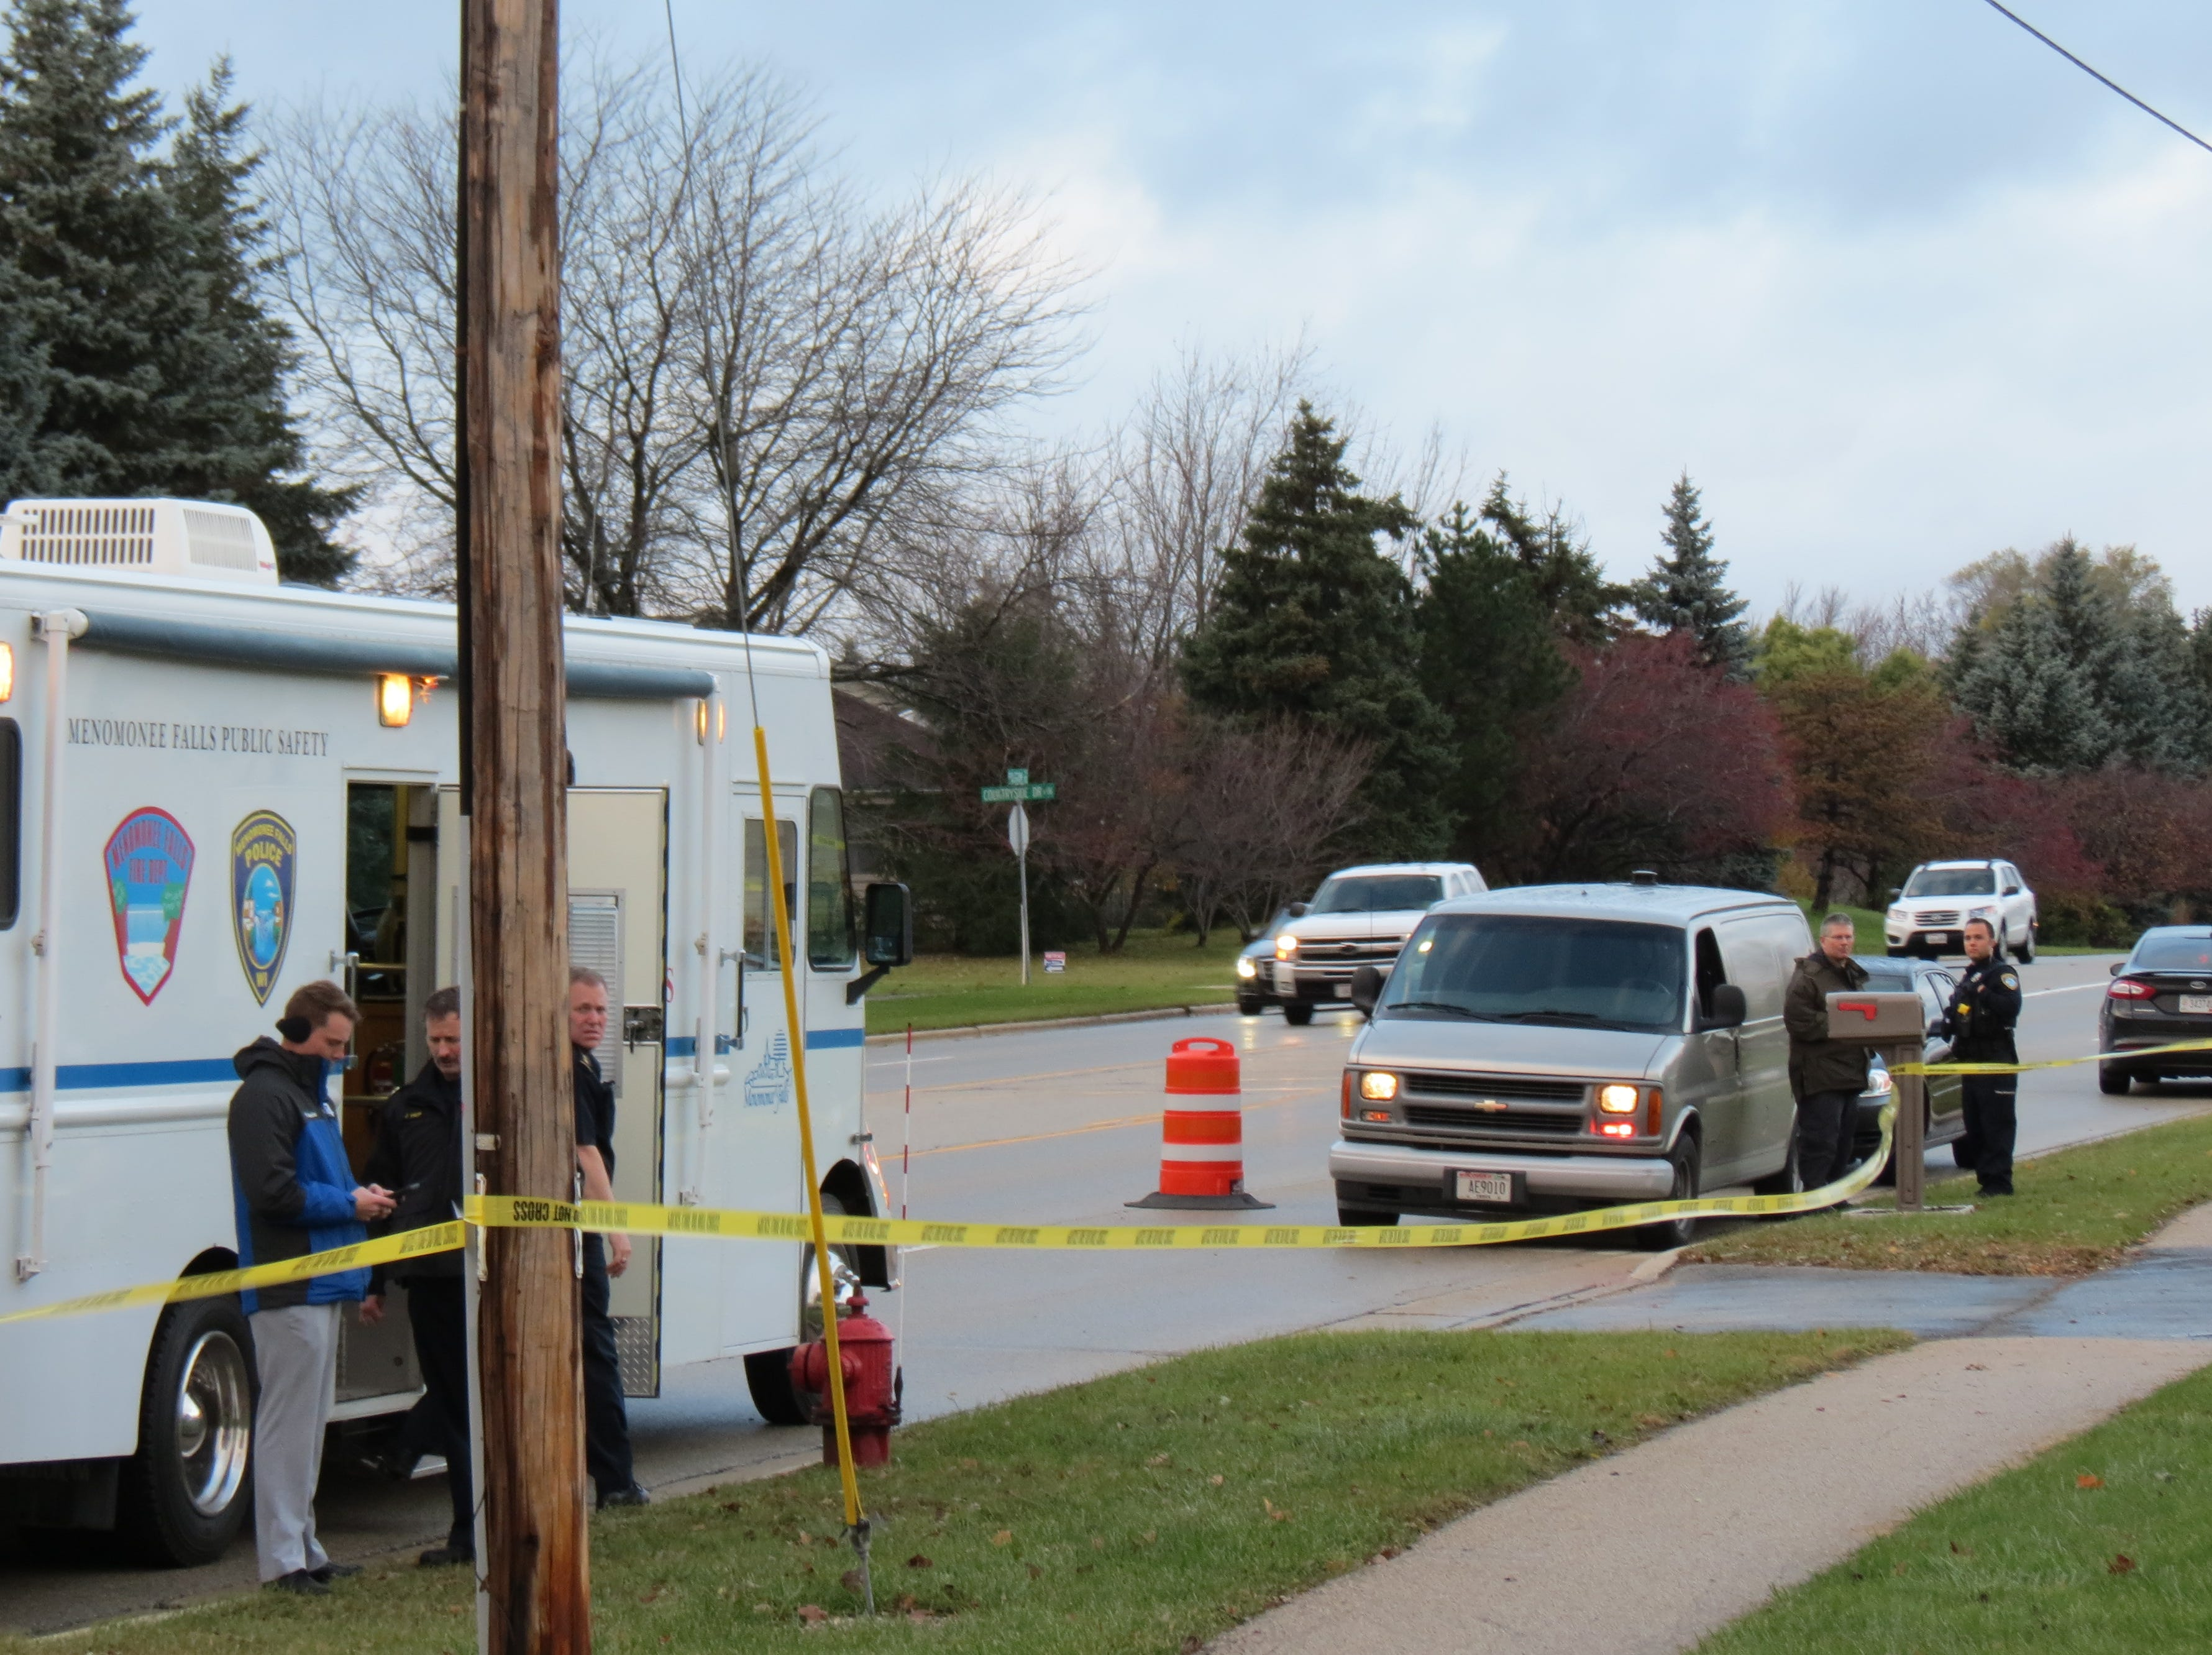 The scene after a reported shooting near Menomonee Falls' River of Life Church of God. The church is on Pilgrim Road.